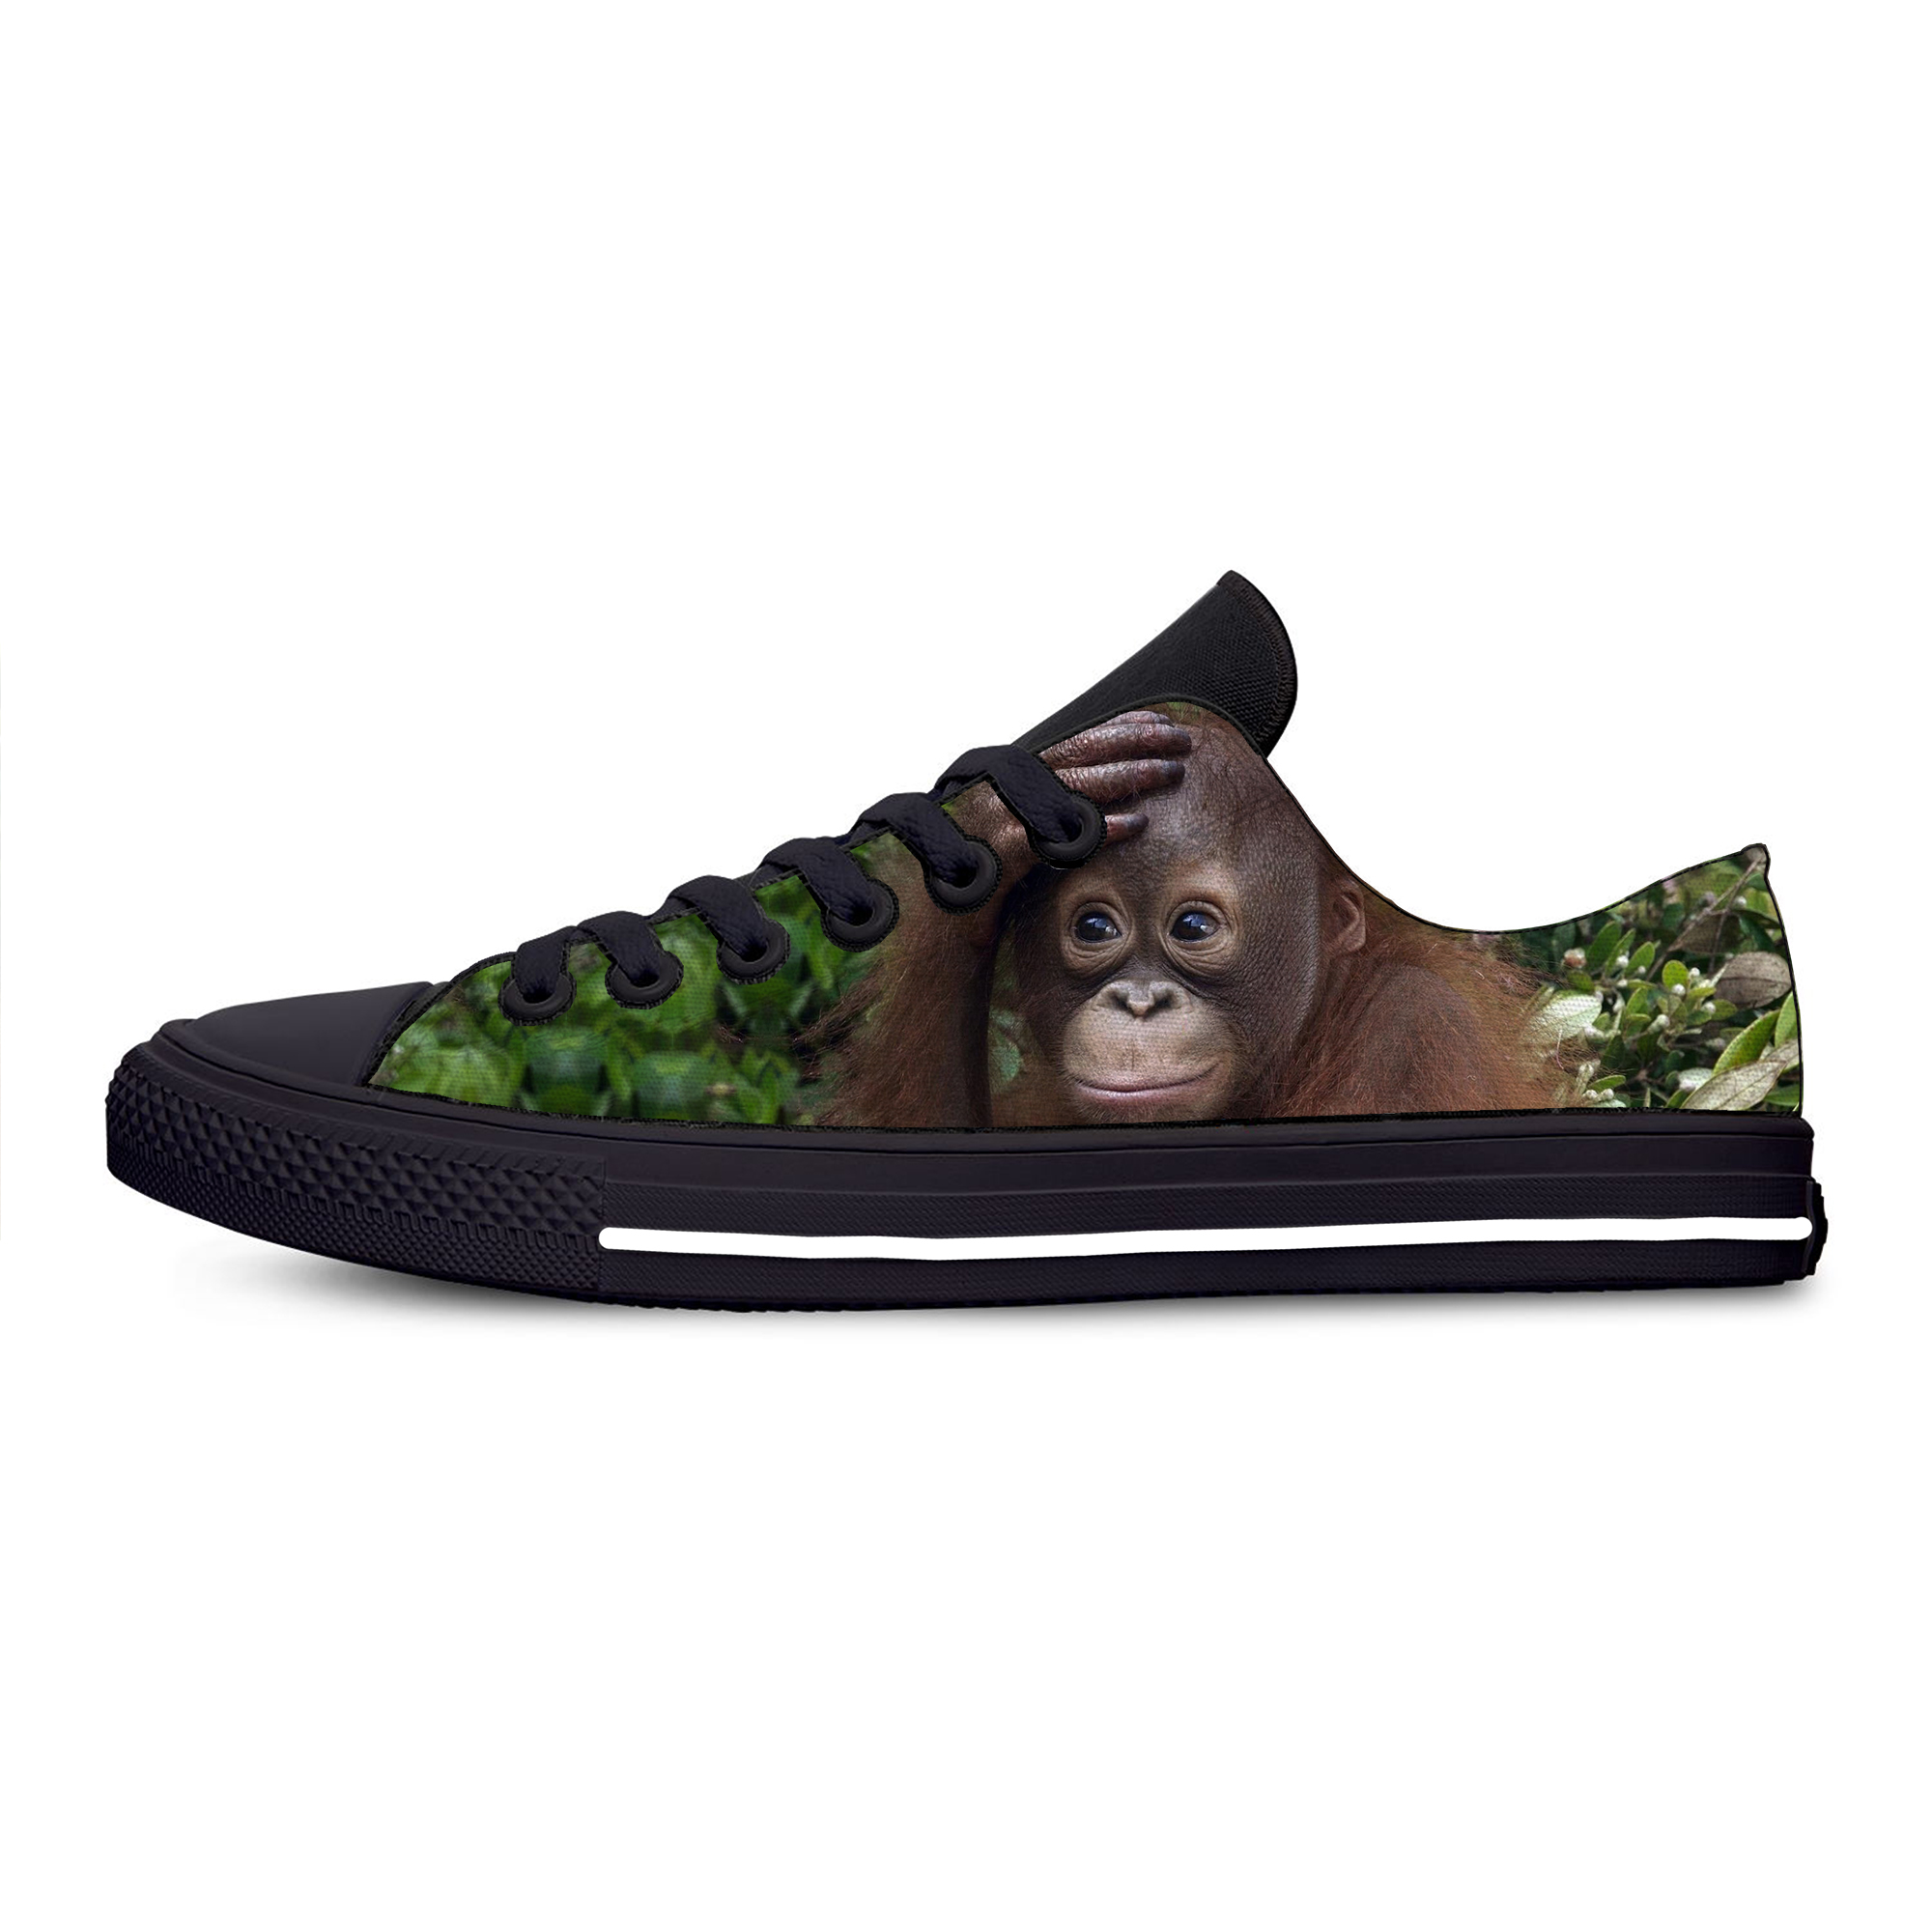 <font><b>3D</b></font> Monkey Animal Hot Funny Humor Fashion Classic Casual Canvas <font><b>Shoes</b></font> Low Top Lightweight Breathable <font><b>3D</b></font> Print Men women Sneakers image